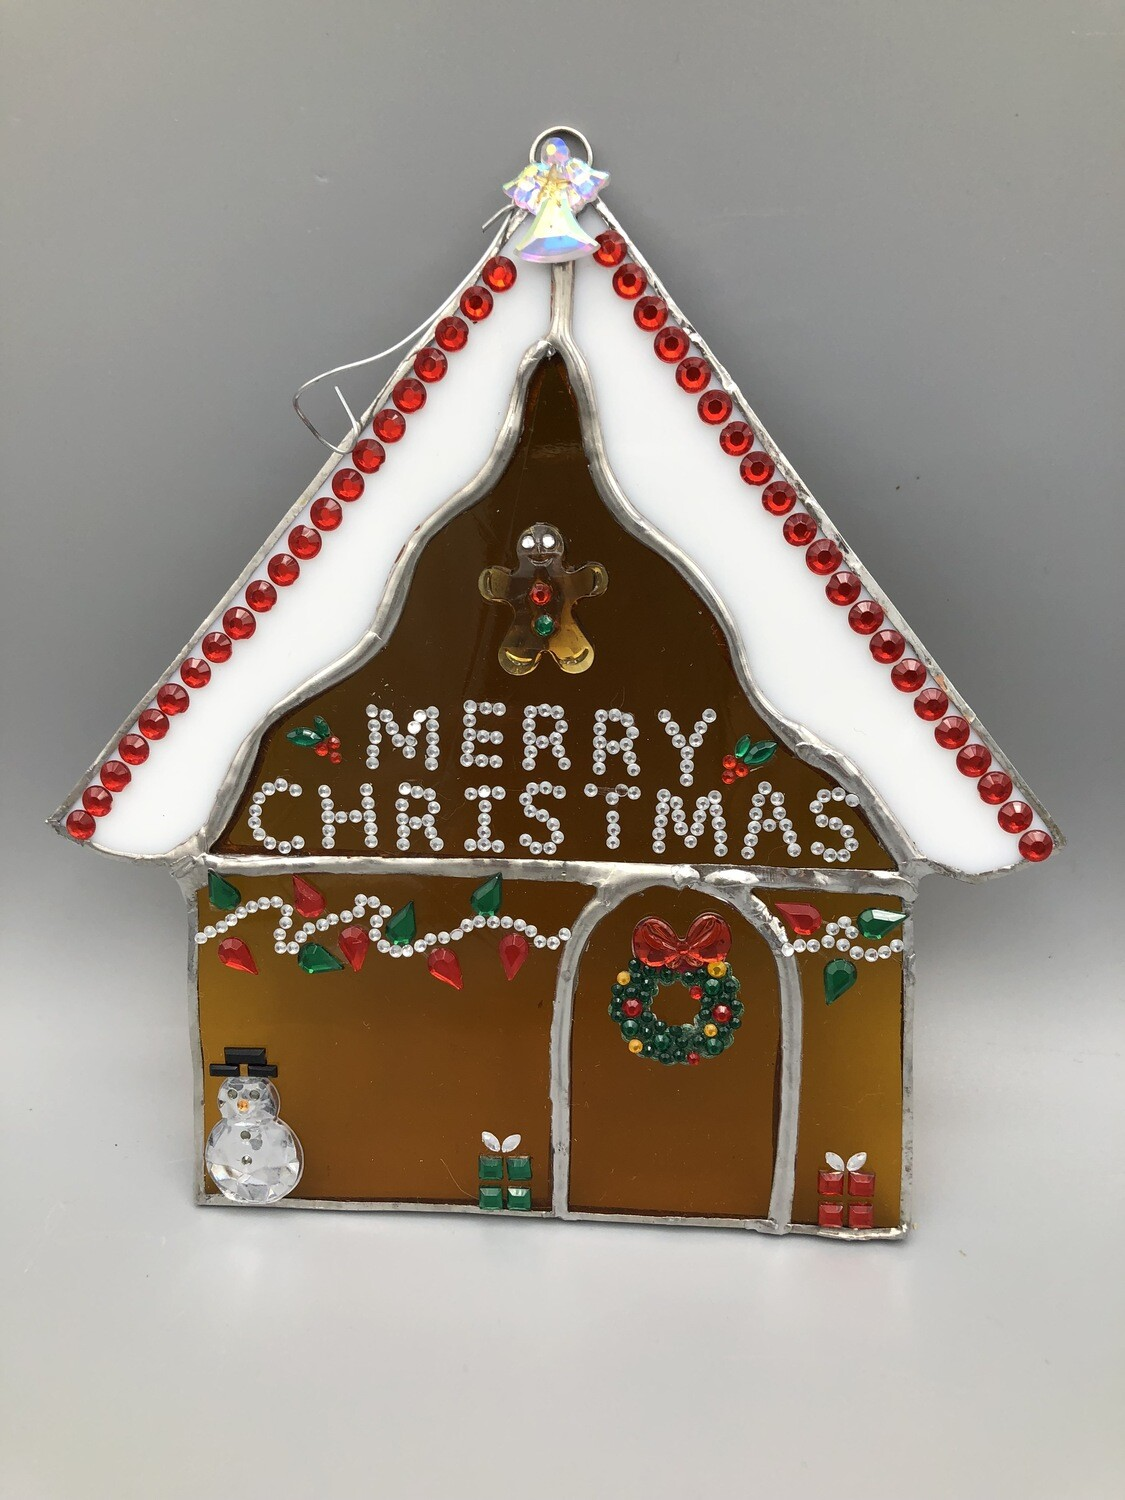 Gingerbread House Stained Glass Class 11/13/21